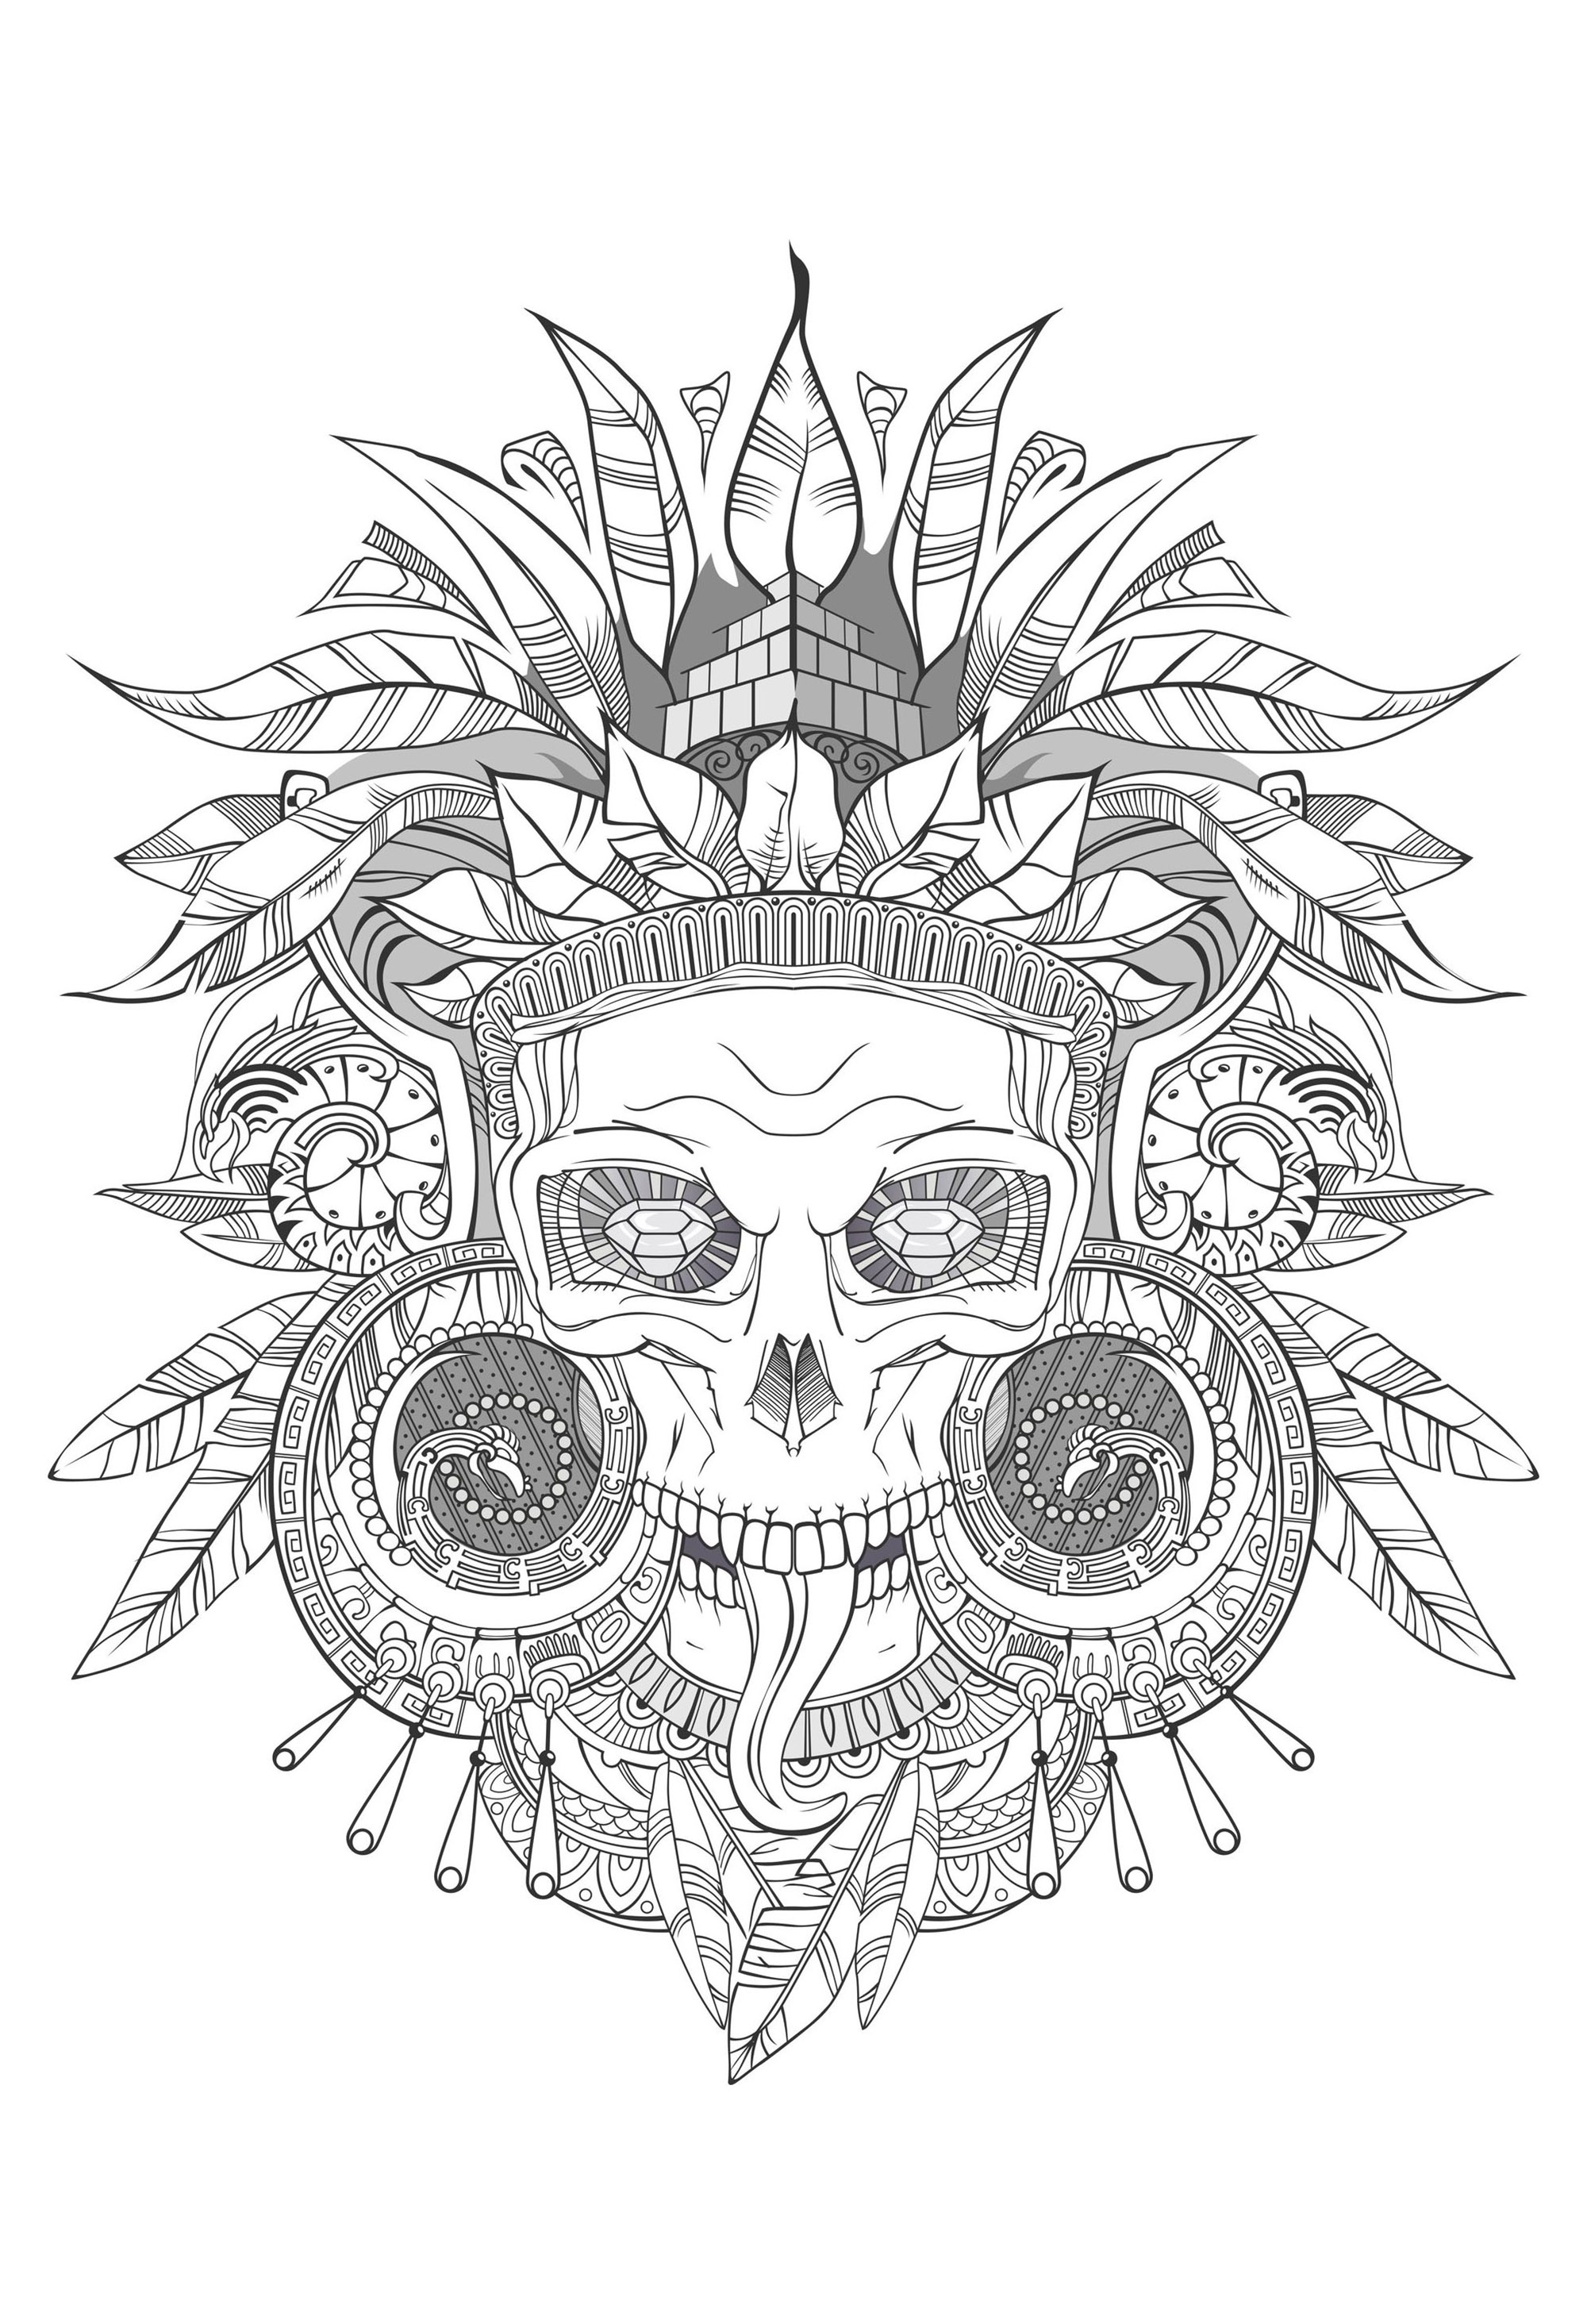 aztec pictures to colour aztecs drawing at getdrawings free download aztec to pictures colour